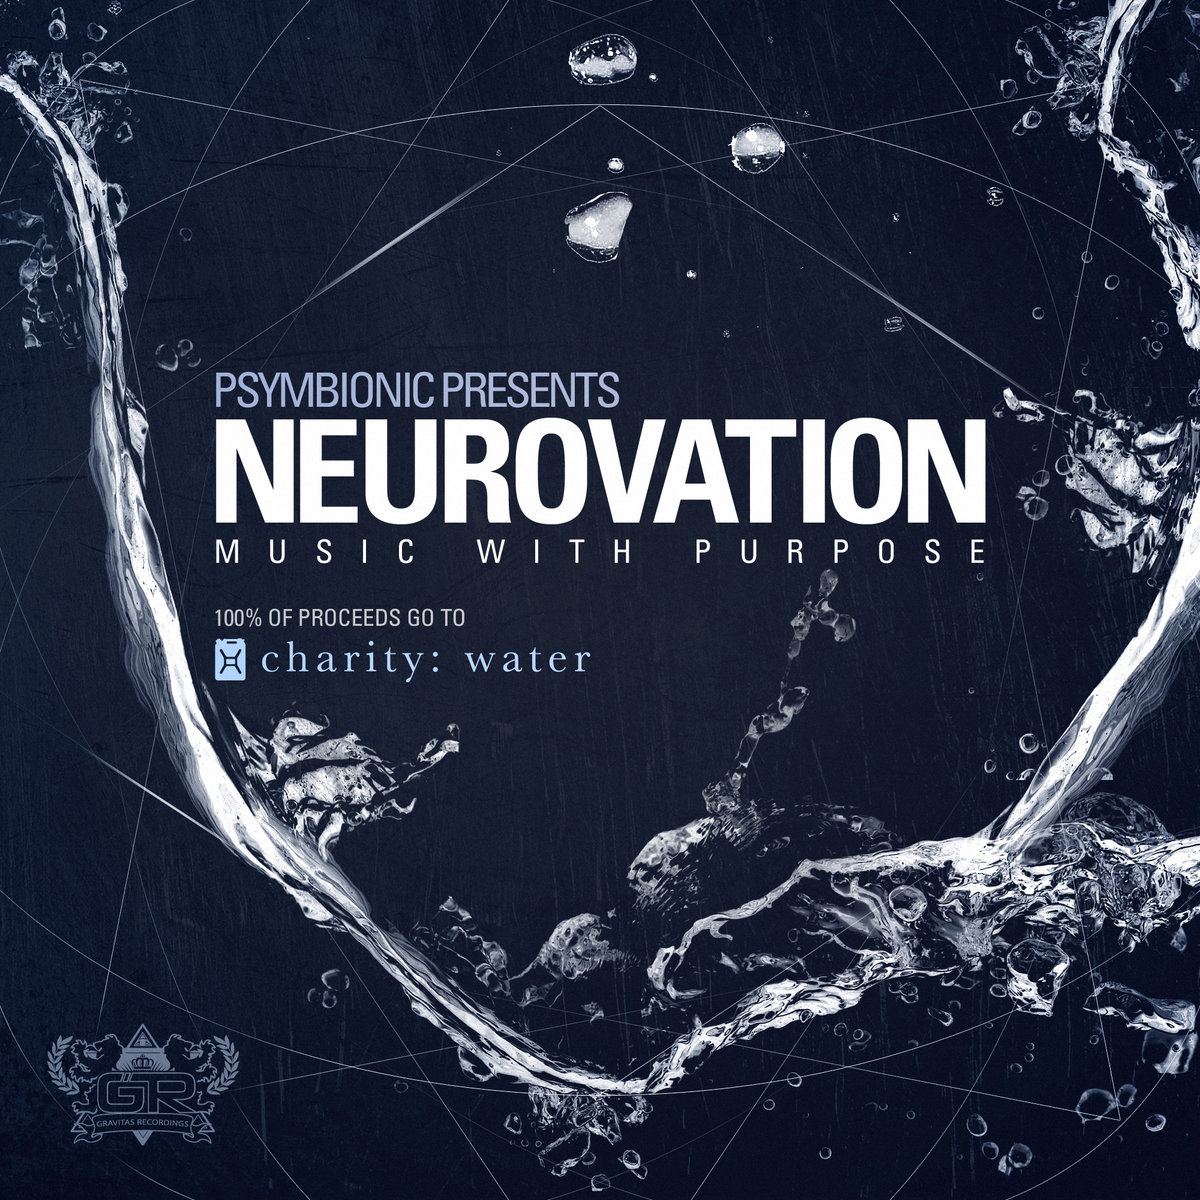 edIT - Pound 4 Pound @ 'Psymbionic Presents: Neurovation' album (cryptex, glitch hop)